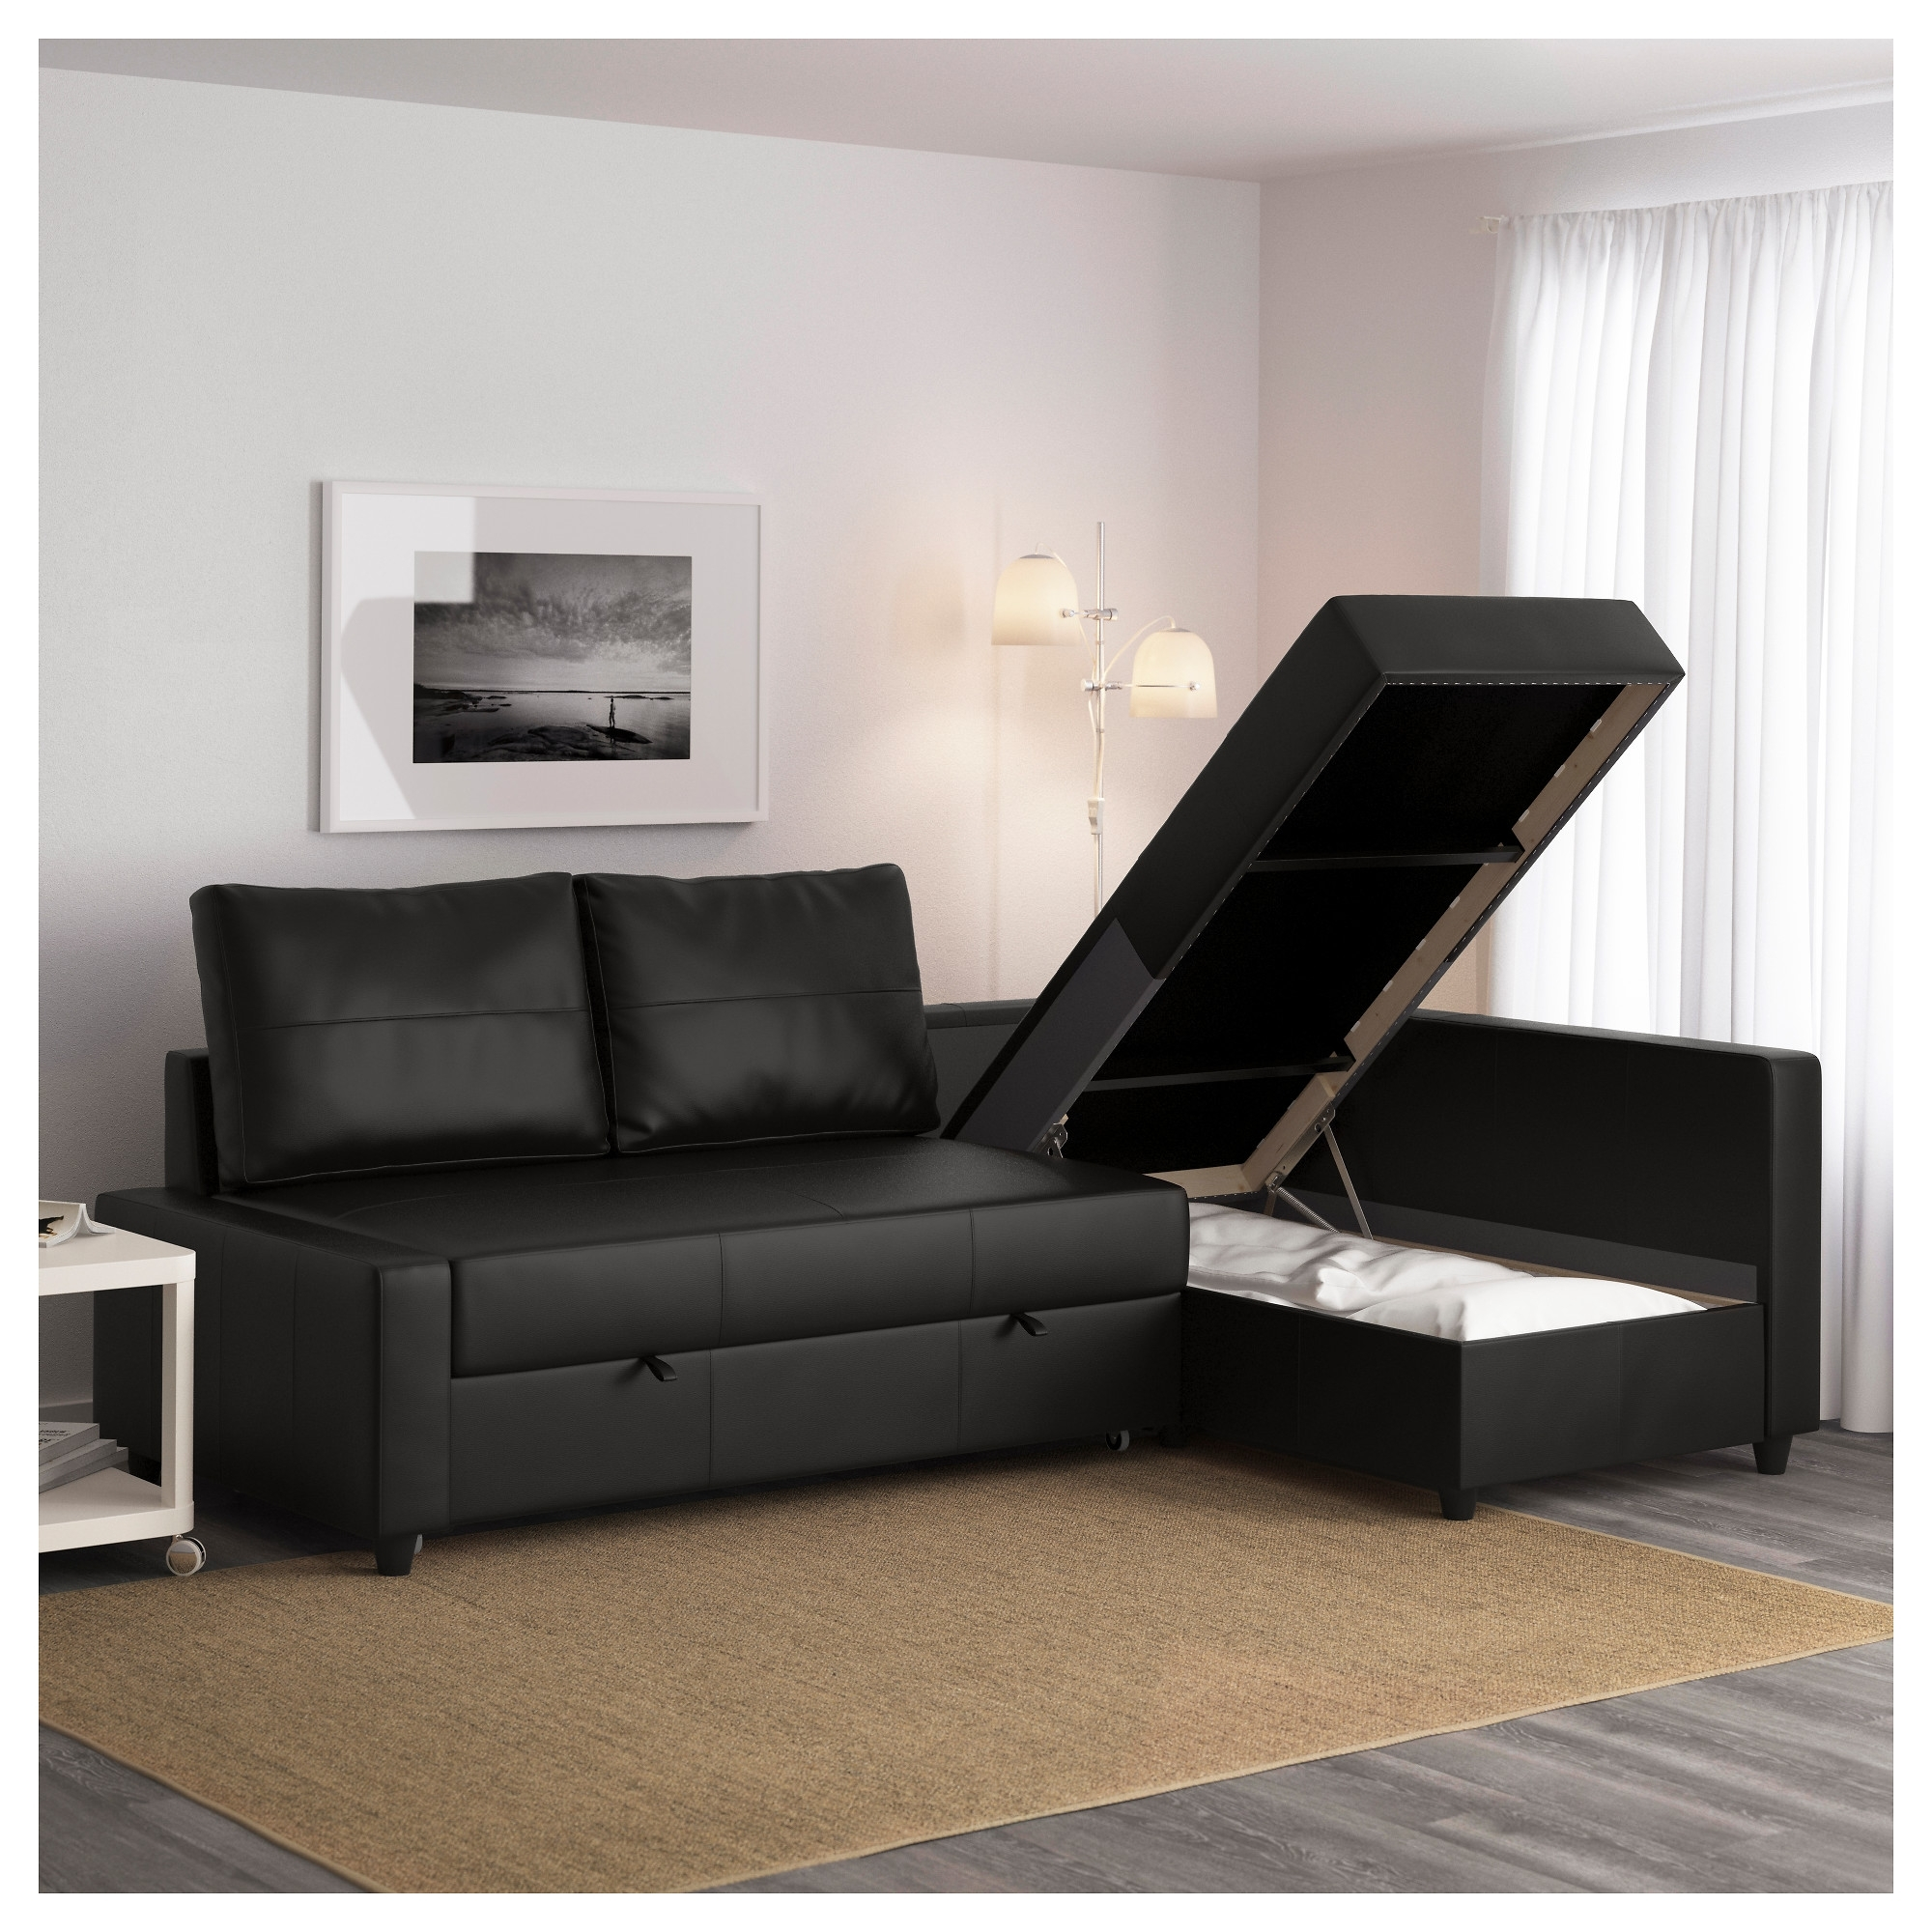 Most Recent Friheten Sleeper Sectional,3 Seat W/storage – Skiftebo Dark Gray Intended For Storage Sofas (View 12 of 20)